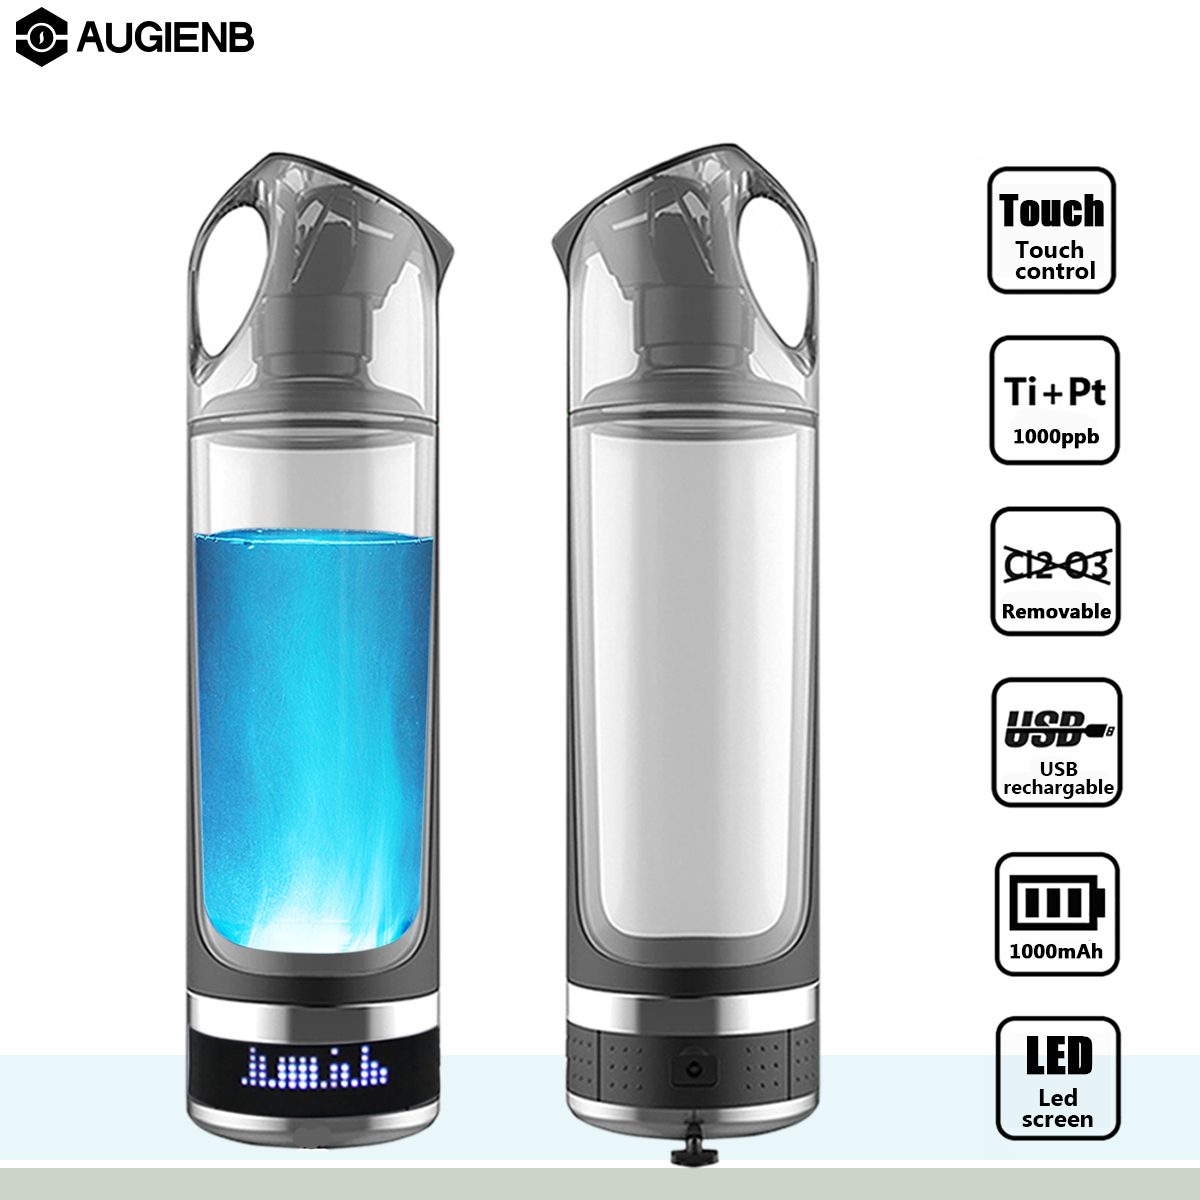 AUGIENB Portable 500ml Hydrogen Rich Water Bottle lonizer Alkaline Generator Healthy Cup USB Rechargeable Anti-Aging Gift